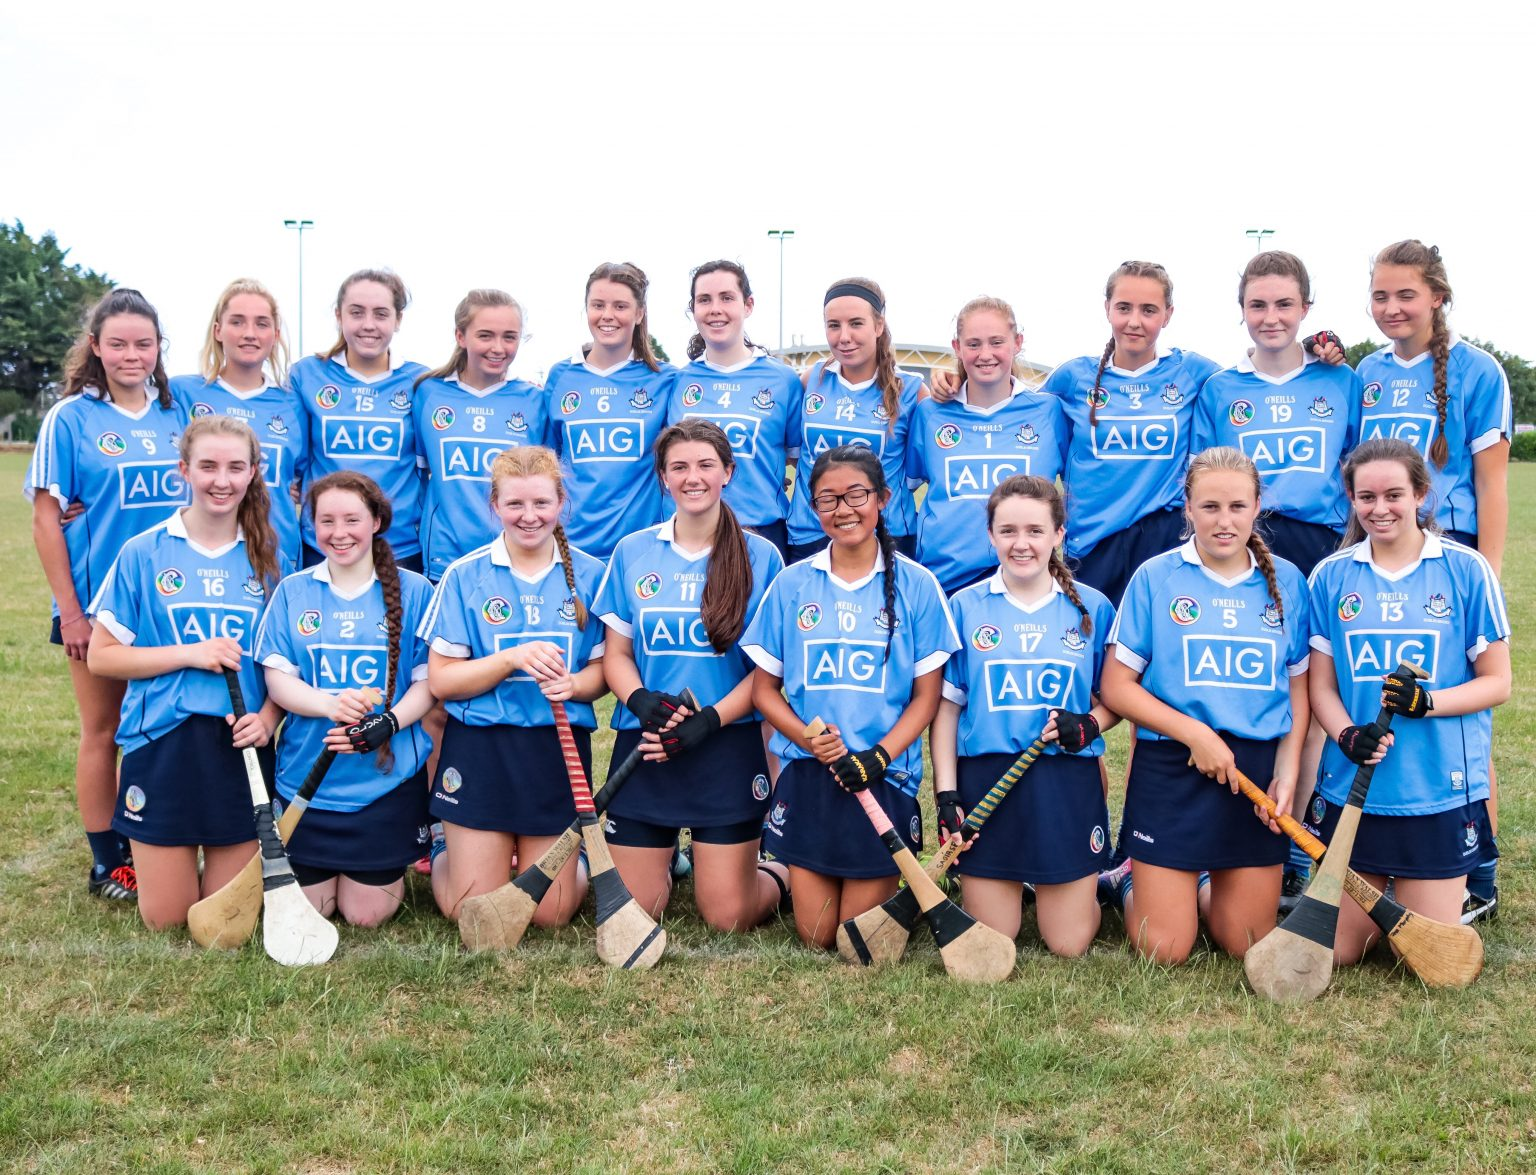 Squad photo of the Dublin Minor B Camogie squad in sky blue jerseys and navy skorts before their bid for a Leinster Final place against Kilkenny